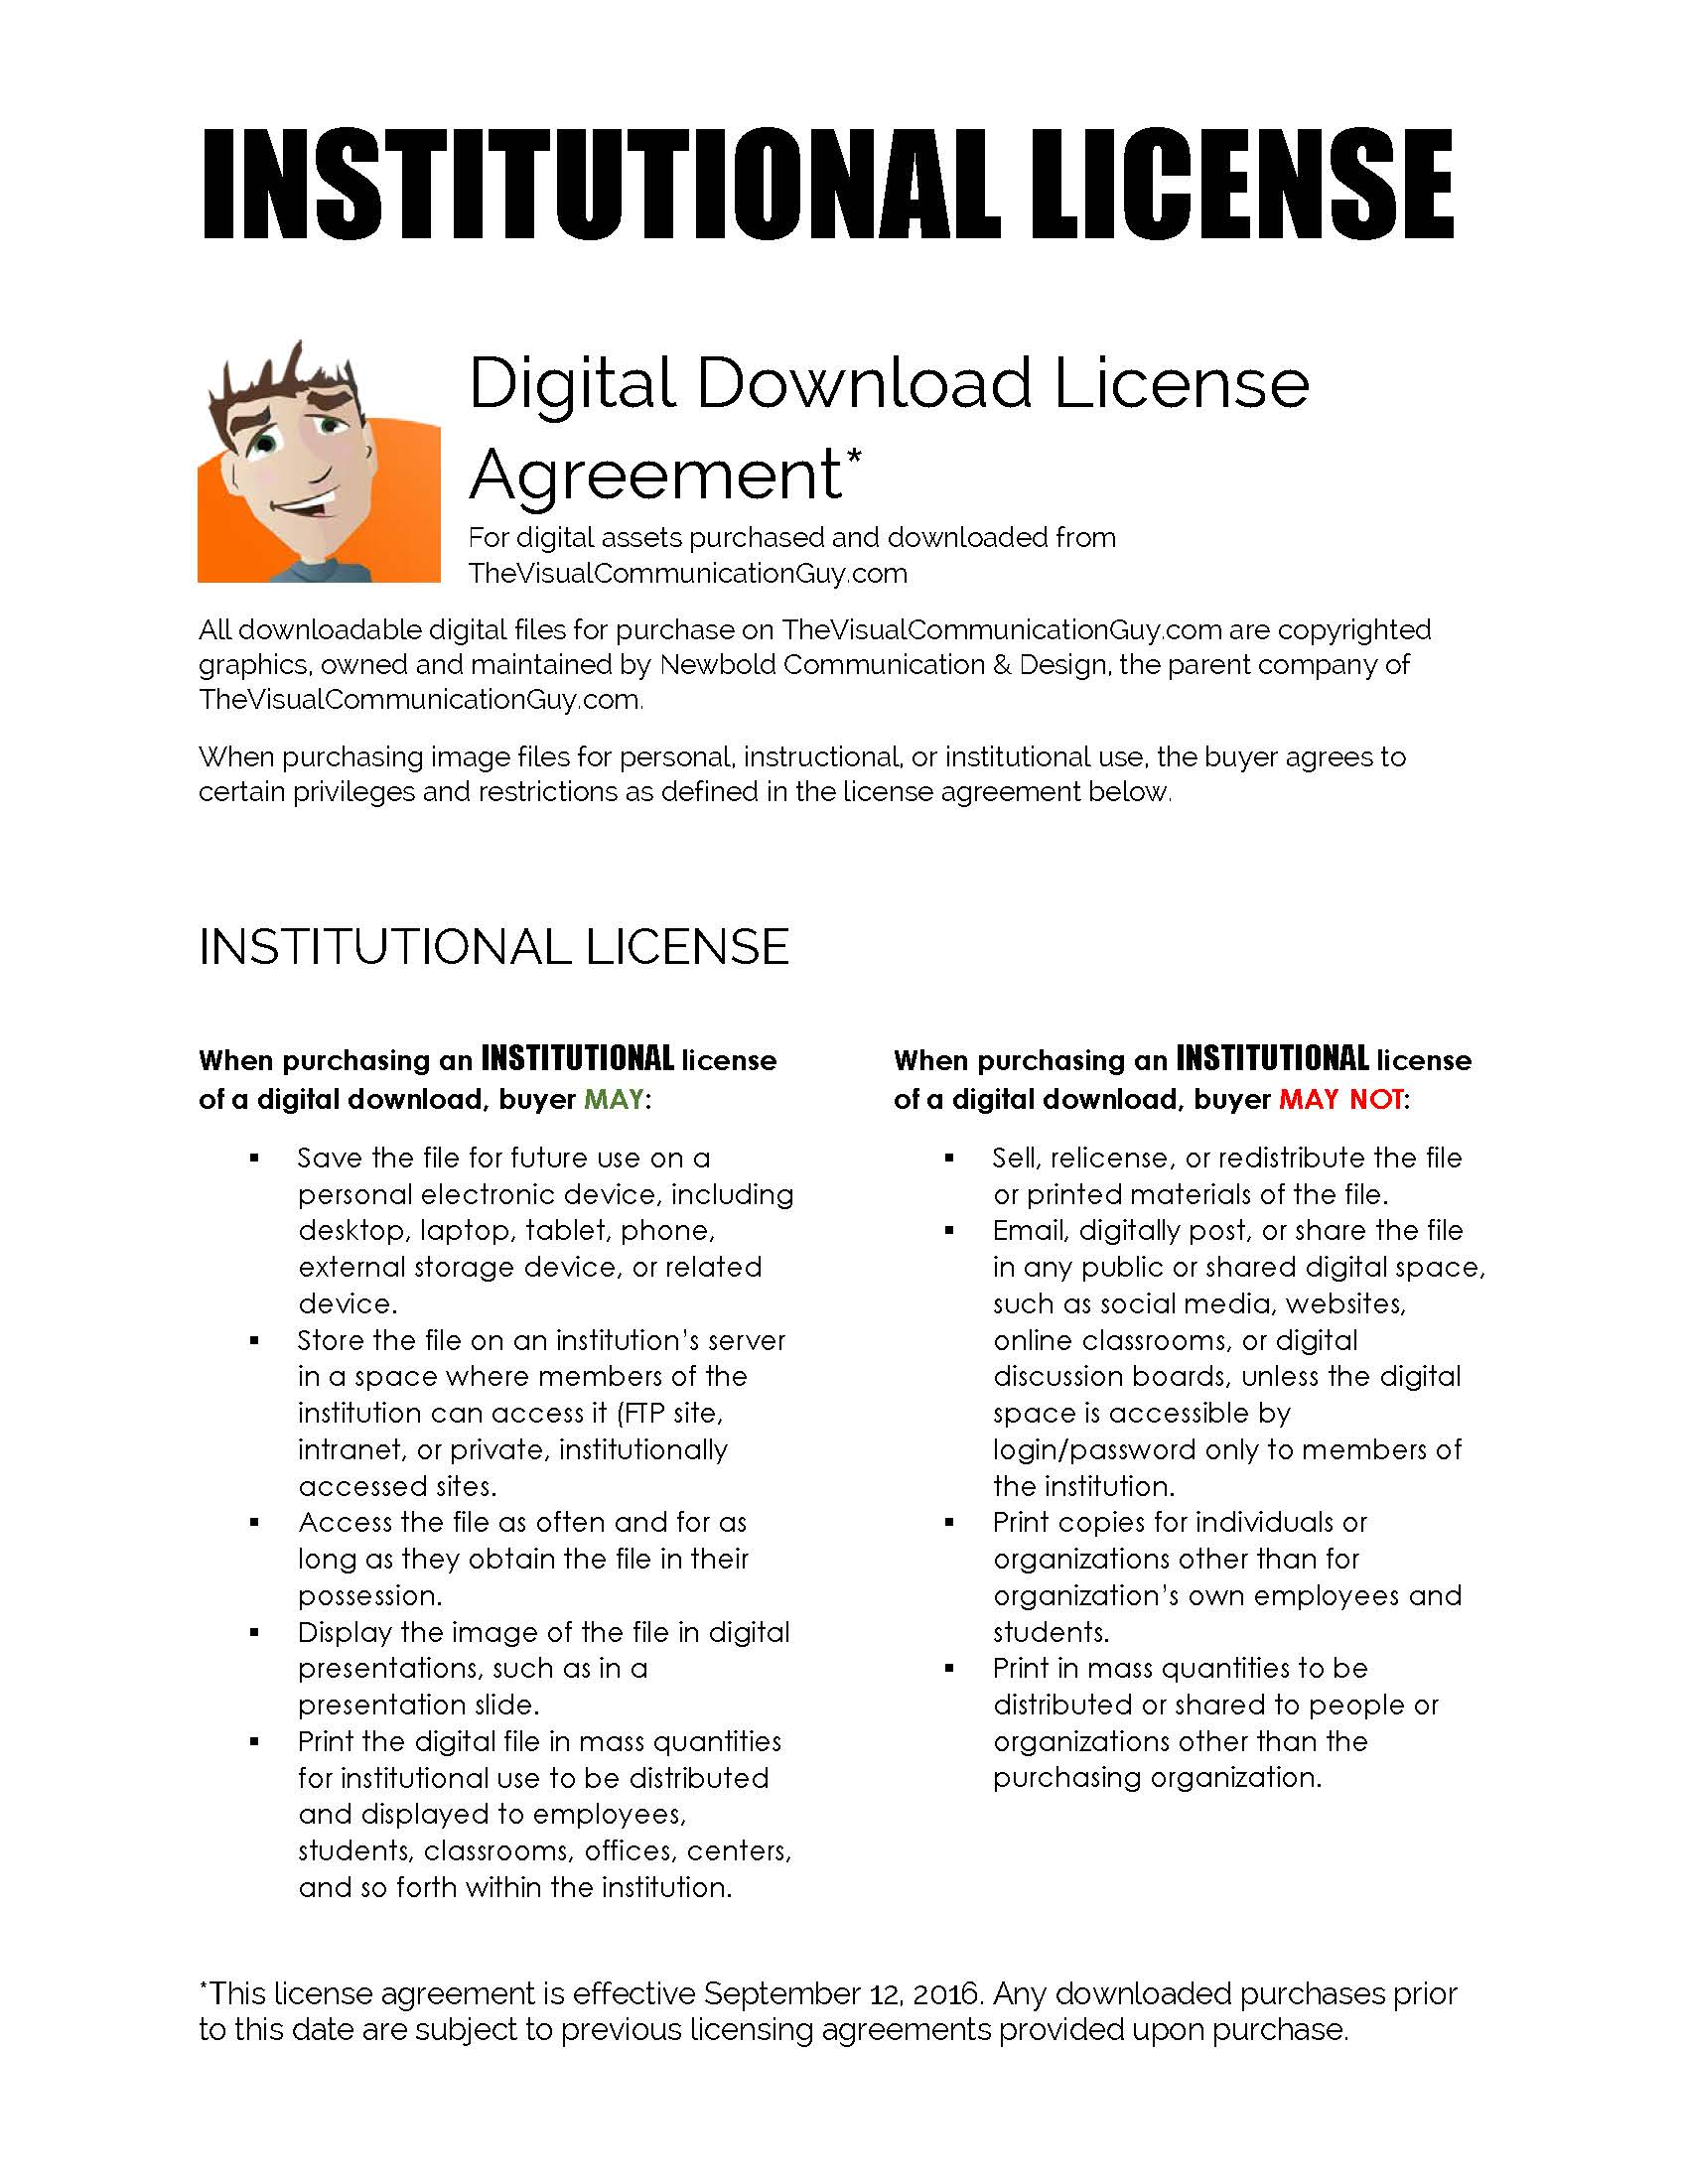 Institutional License Agreement